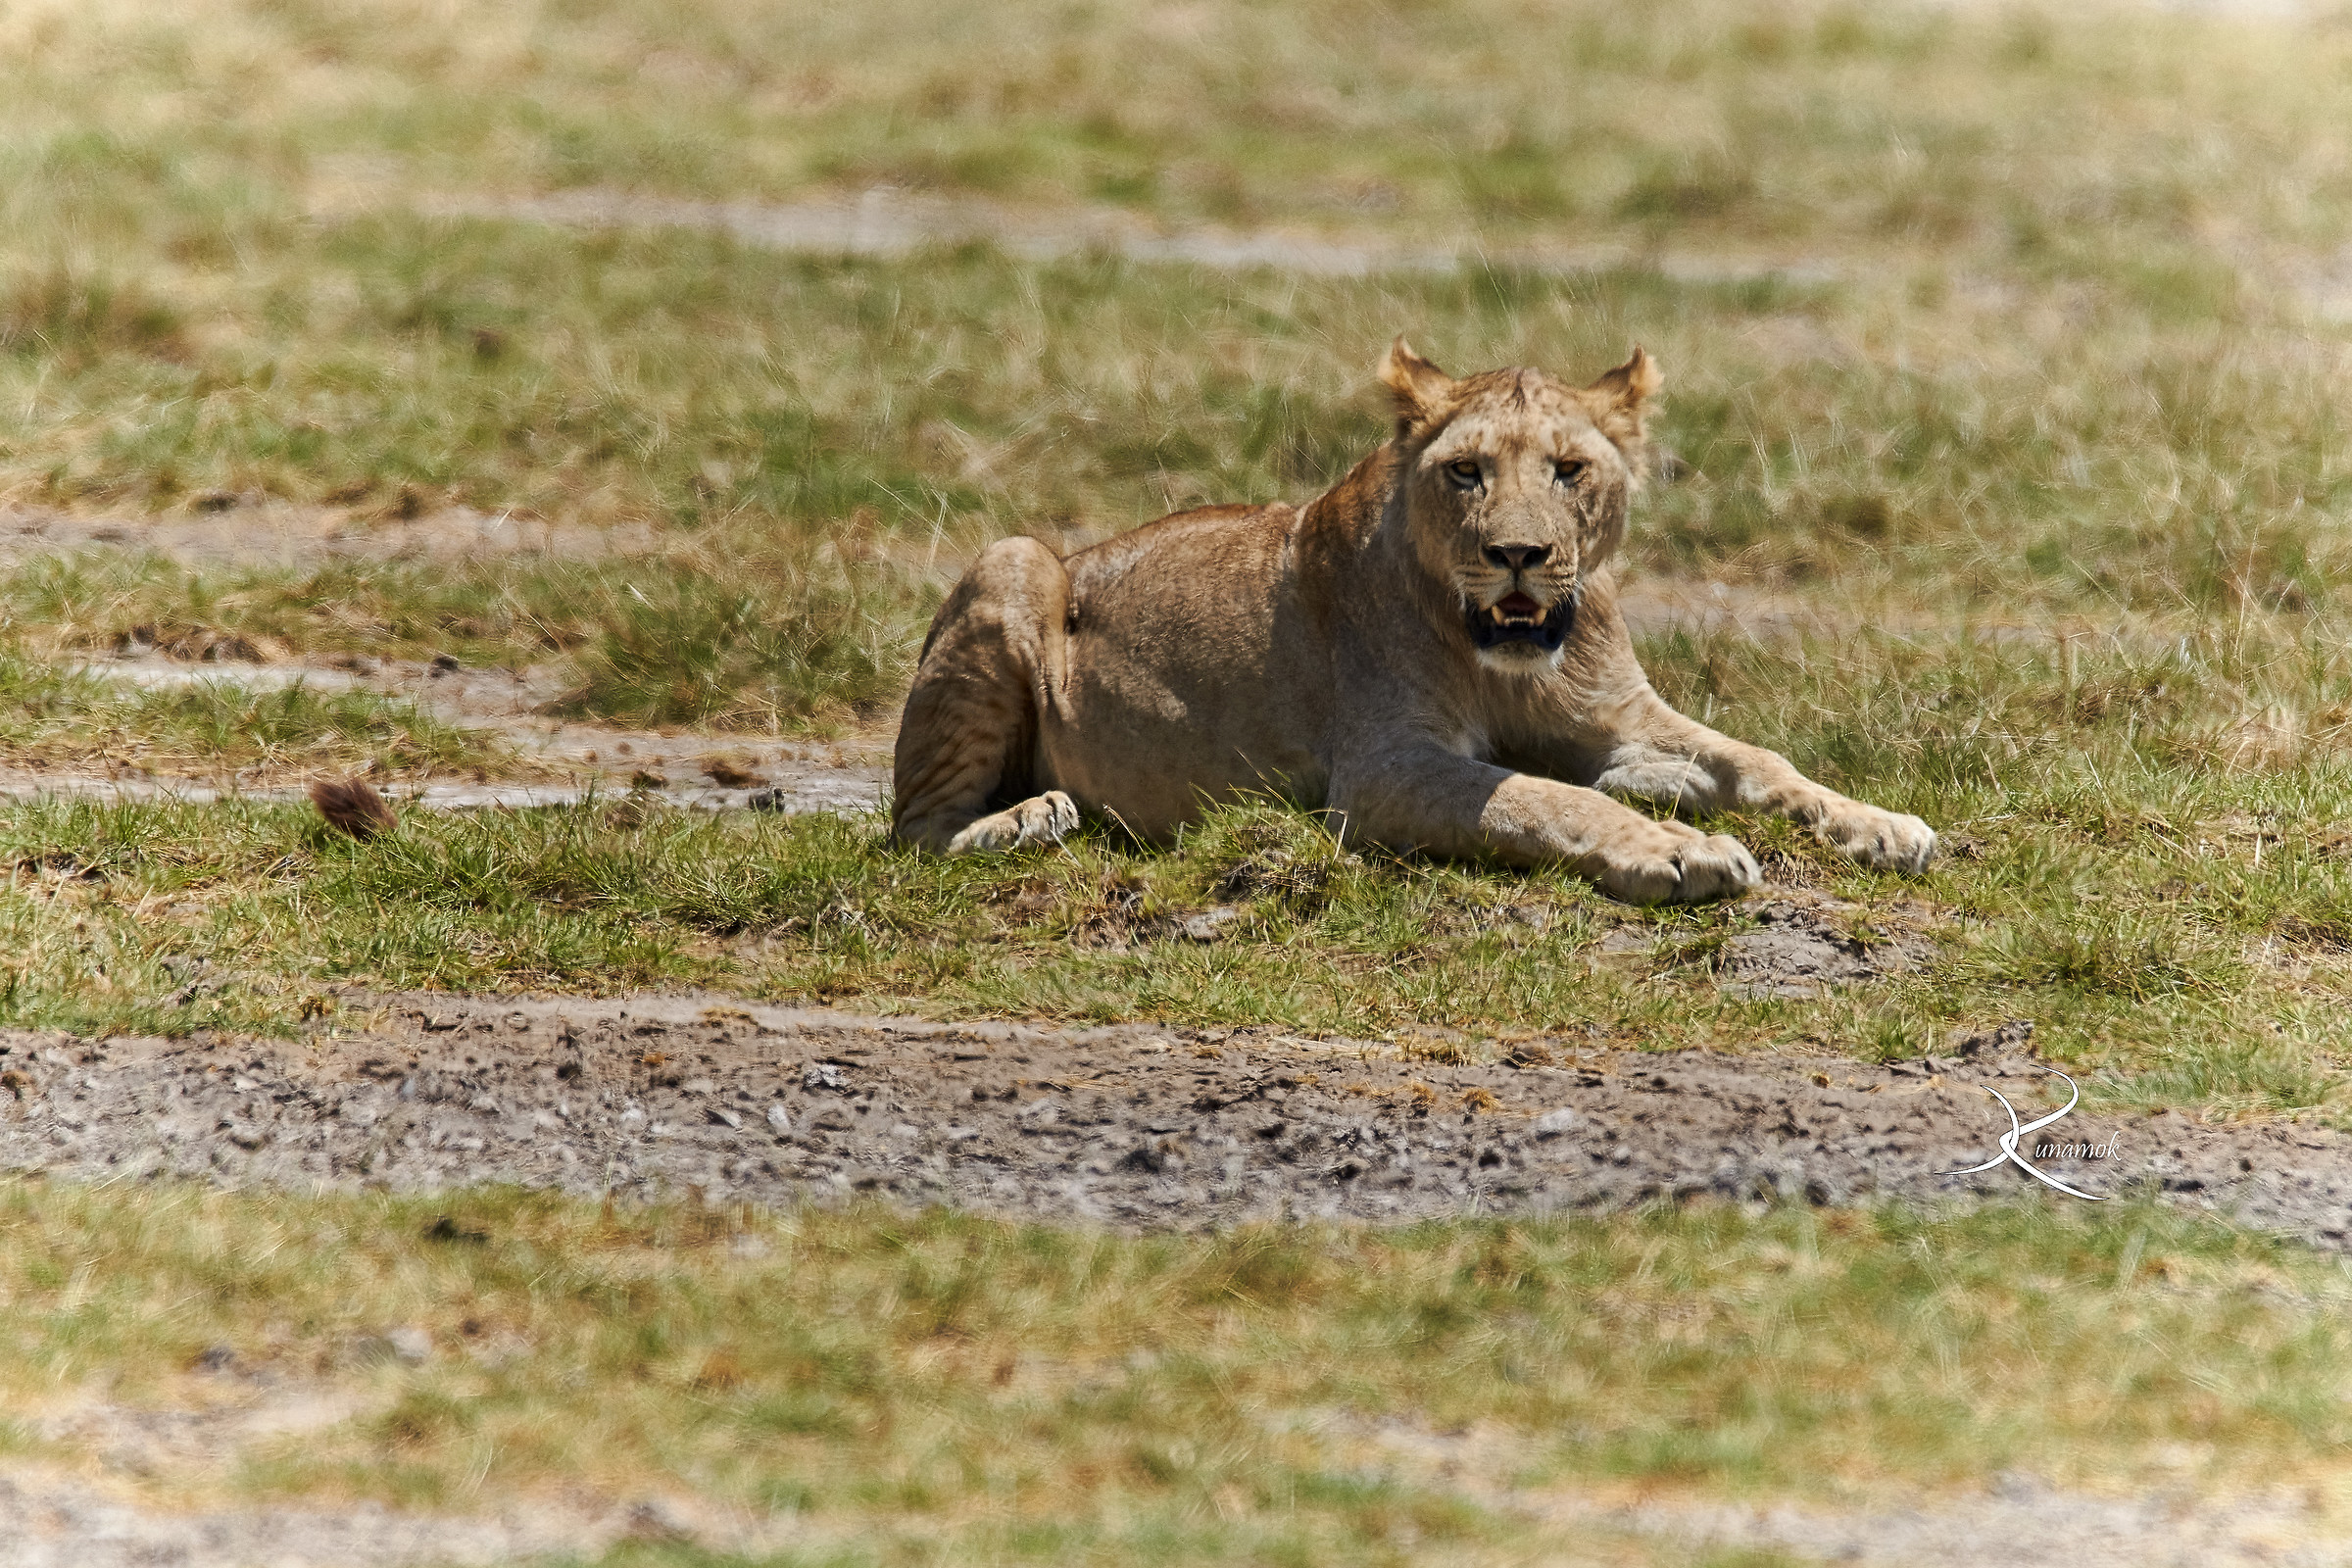 Lioness in the heat of the Savannah...